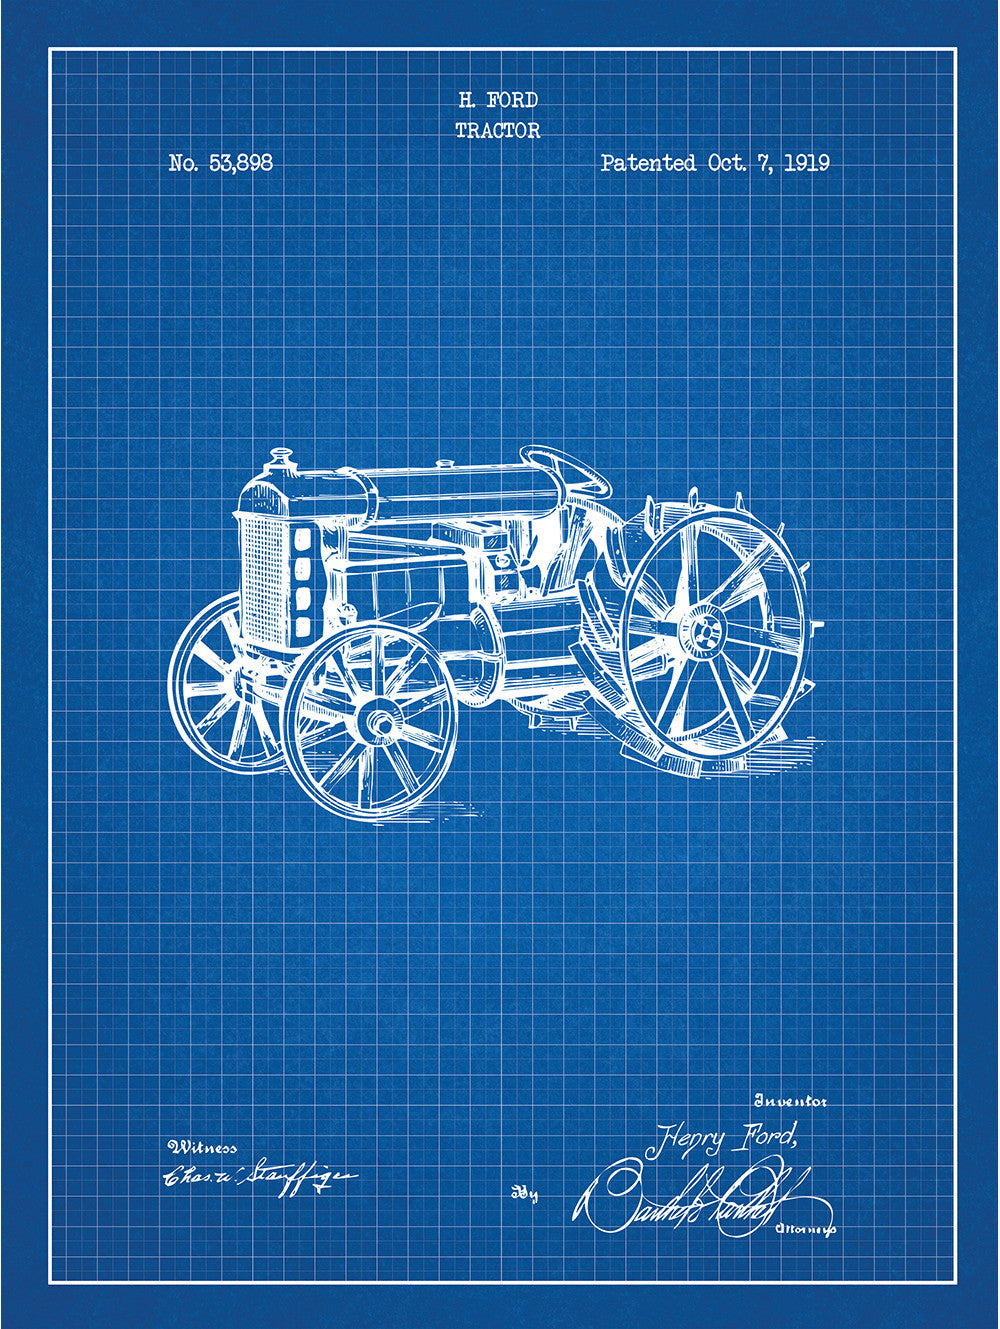 Ford Tractor - H. Ford - 1919